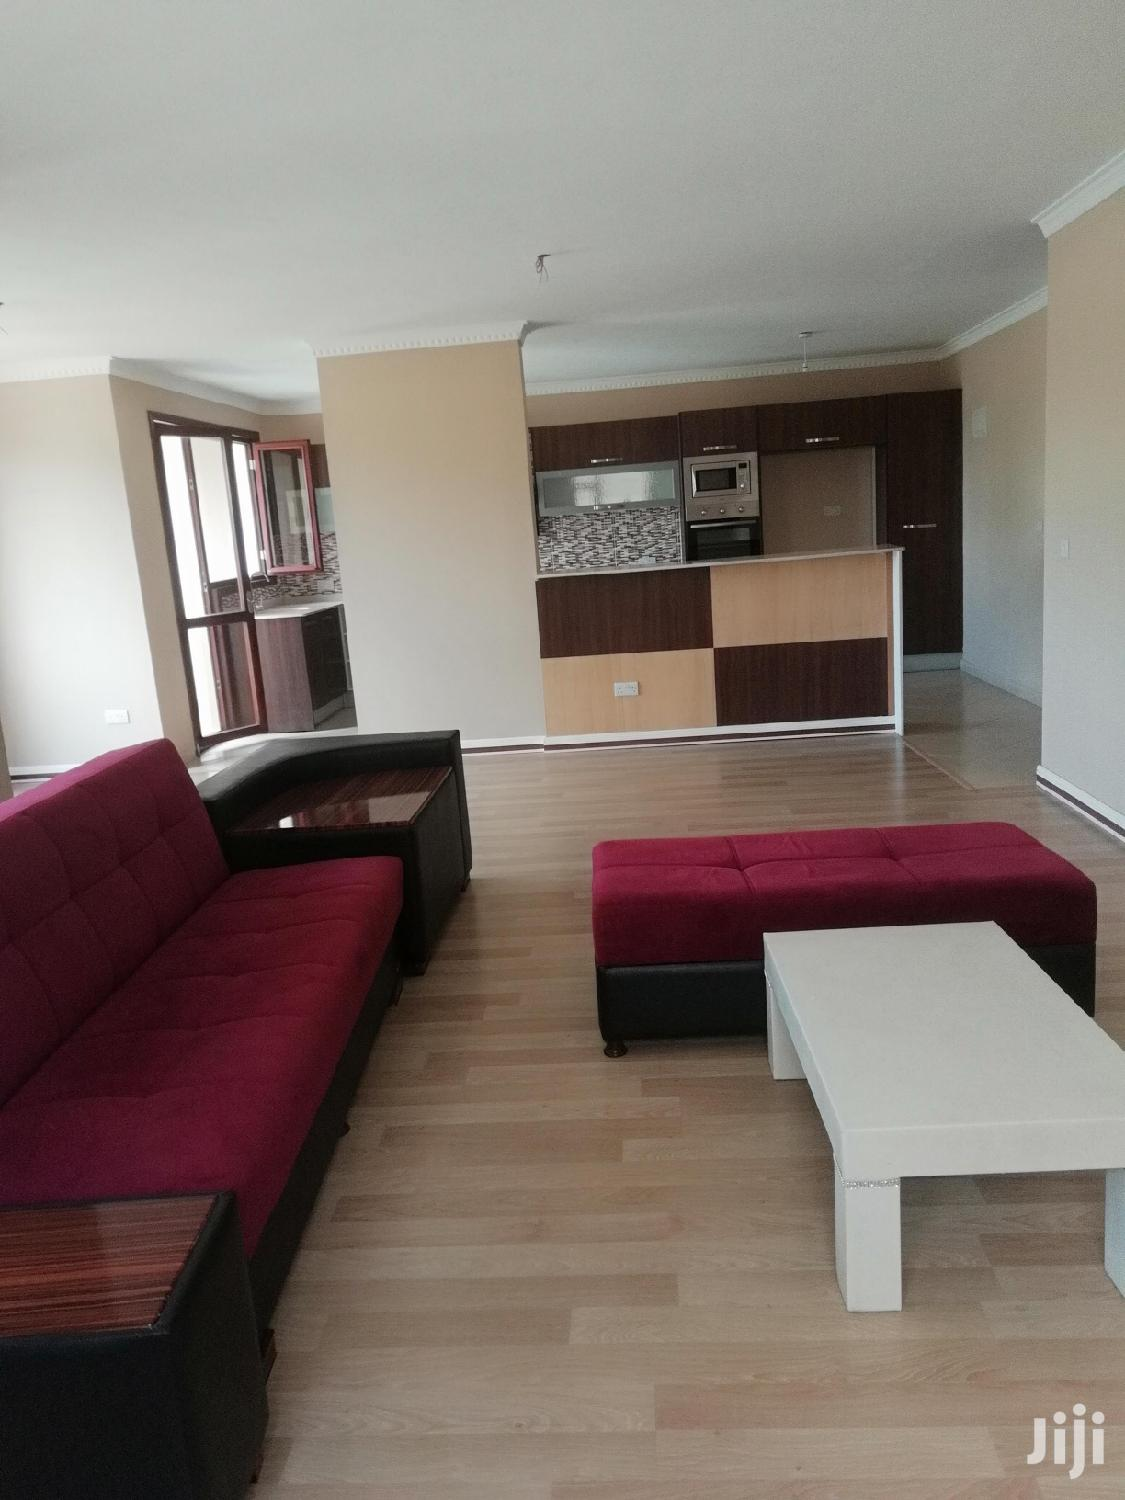 Property World,2/3br Apartment With Pool,Gym,Lift And Secure | Houses & Apartments For Rent for sale in Kileleshwa, Nairobi, Kenya